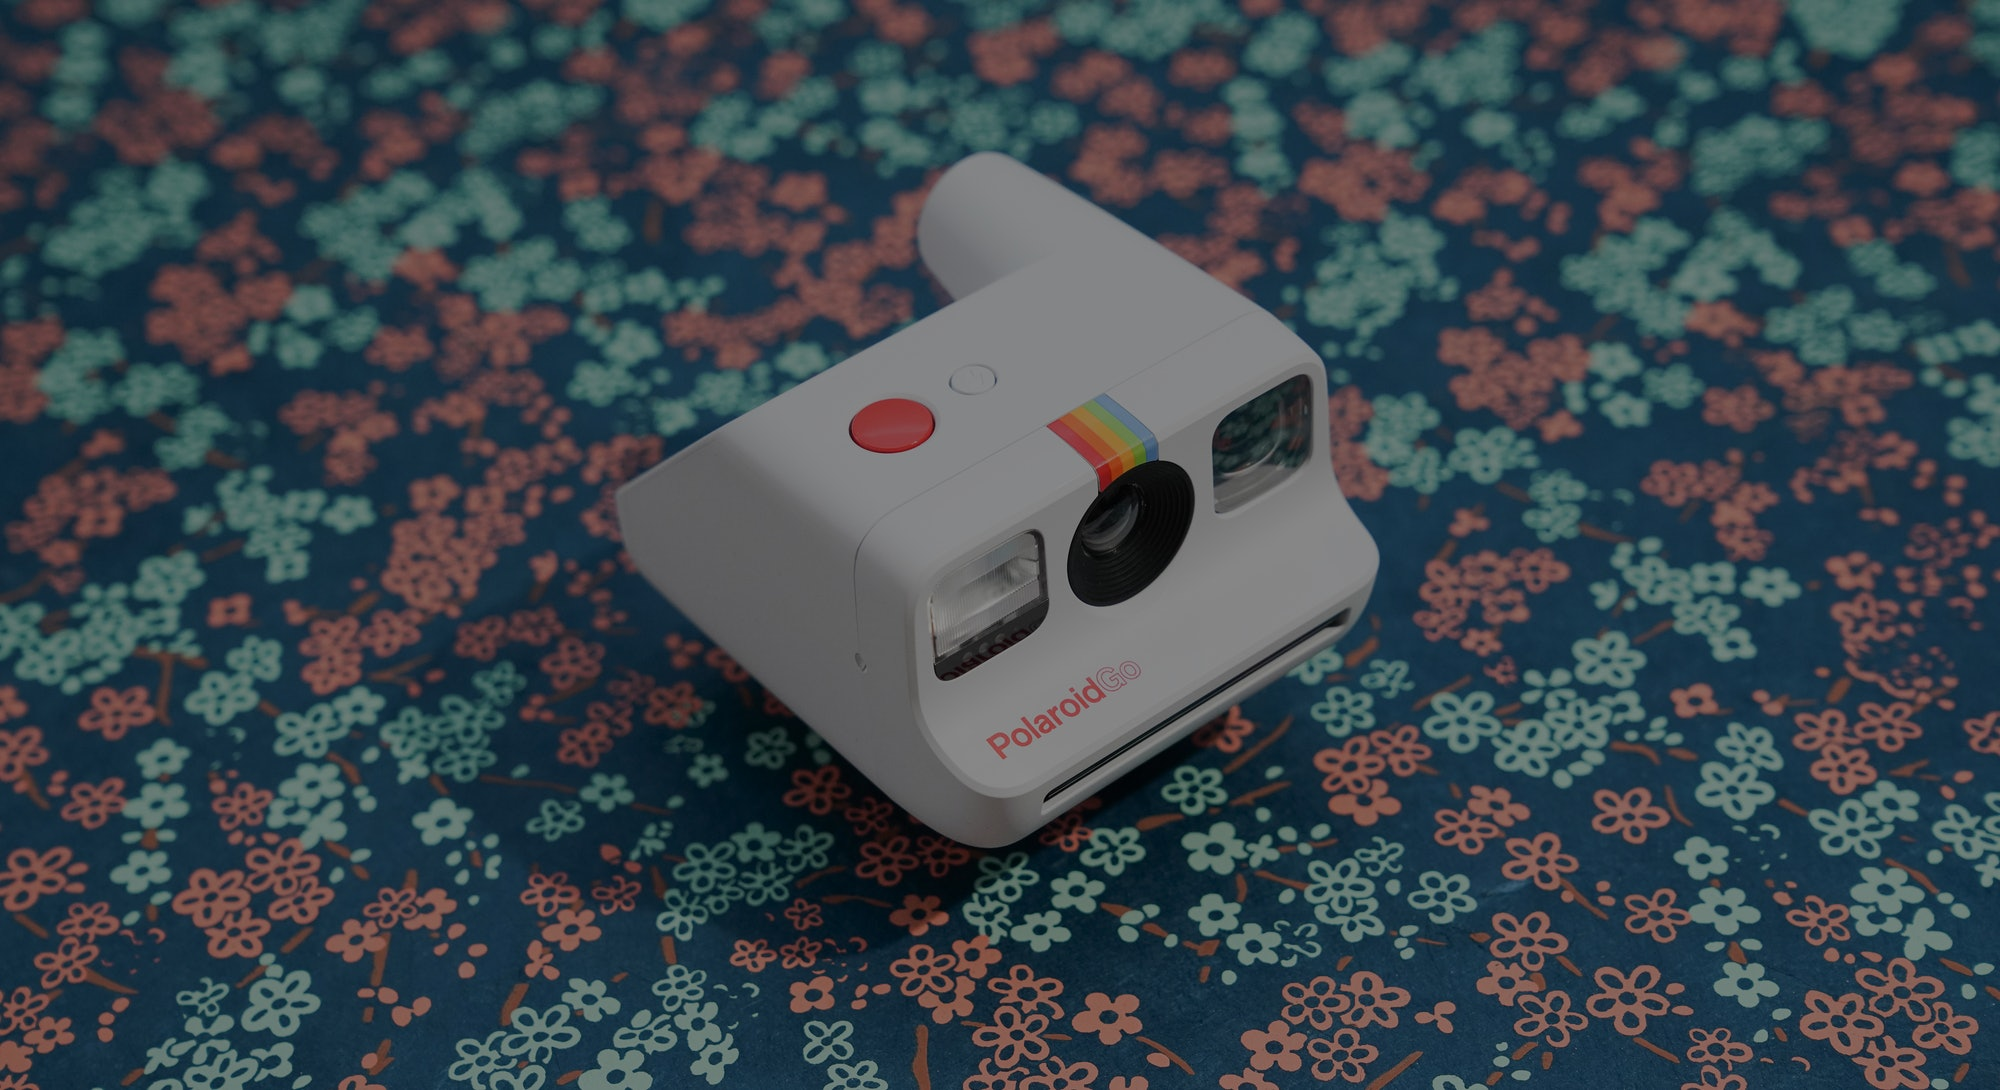 Polaroid Go review: An intentional rejection of Instagram's fake reality